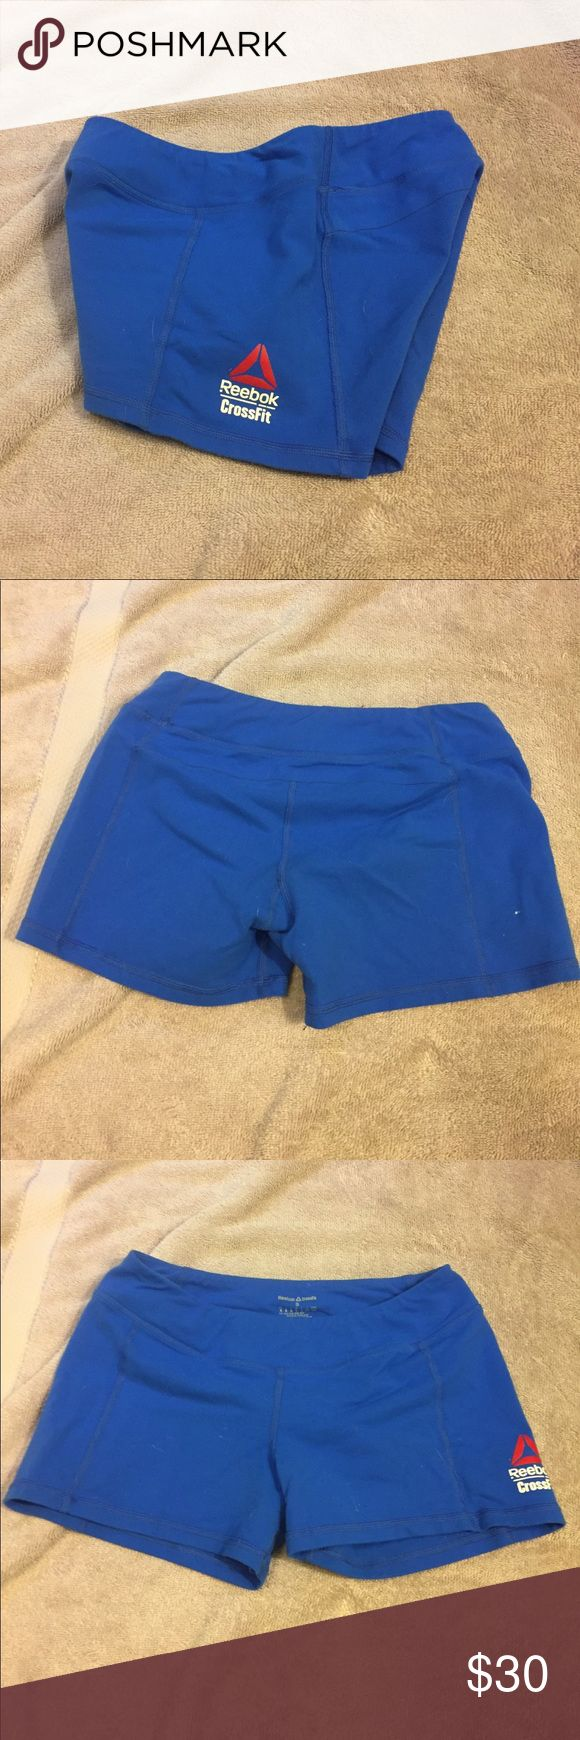 Reebok CrossFit Shorts Royal blue Reebok CrossFit shorts. I've worn them maybe 3 times? I just don't love the fit. From the 2015 games season, key pocket in front, very good condition. Reebok Other